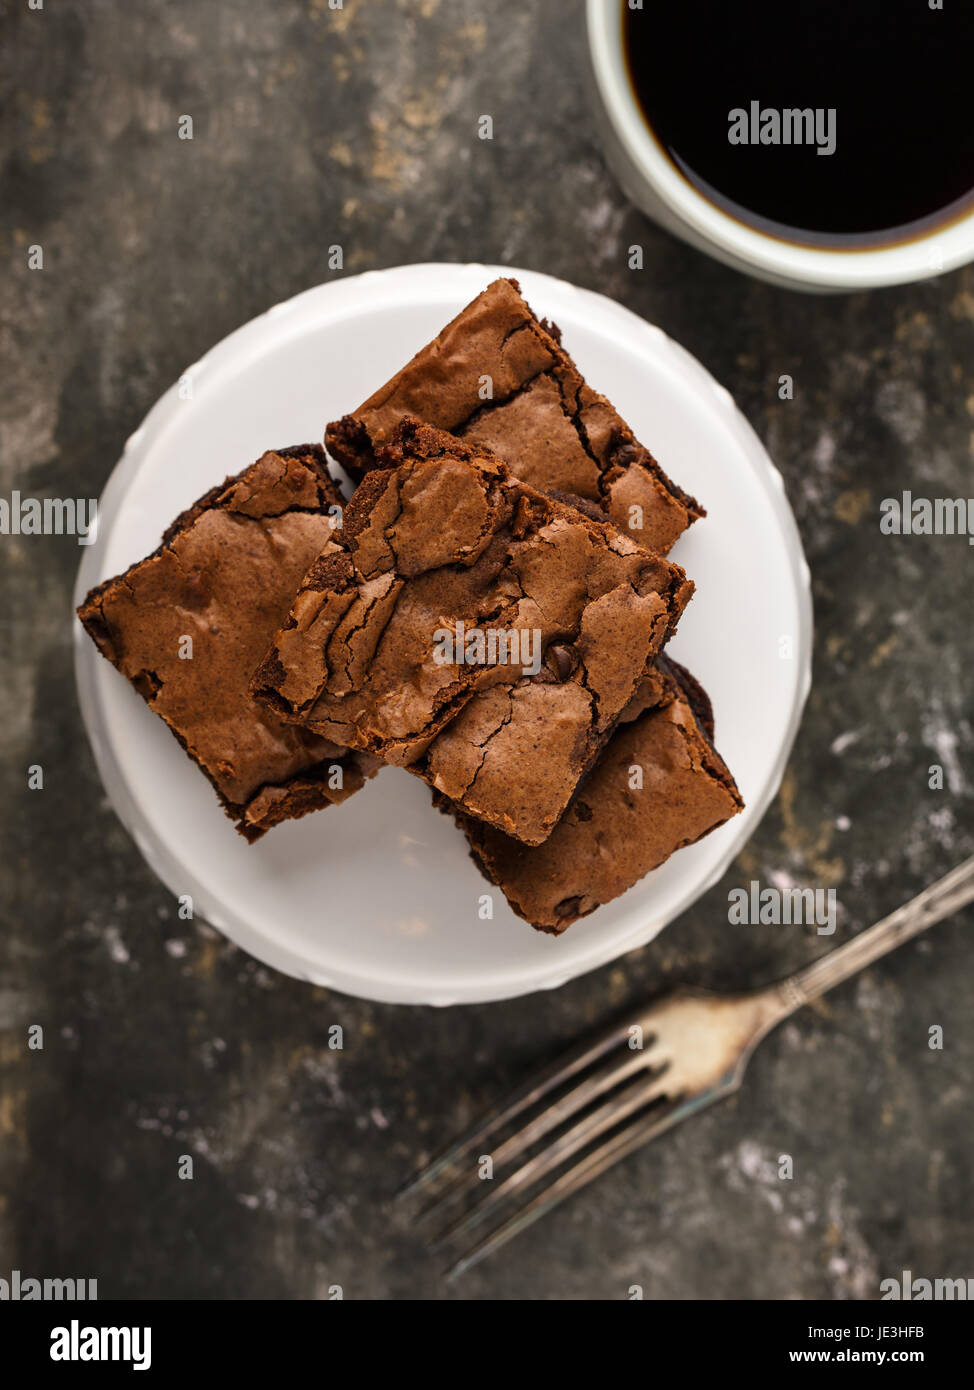 homemade brownies on a dessert plate and coffee. - Stock Image